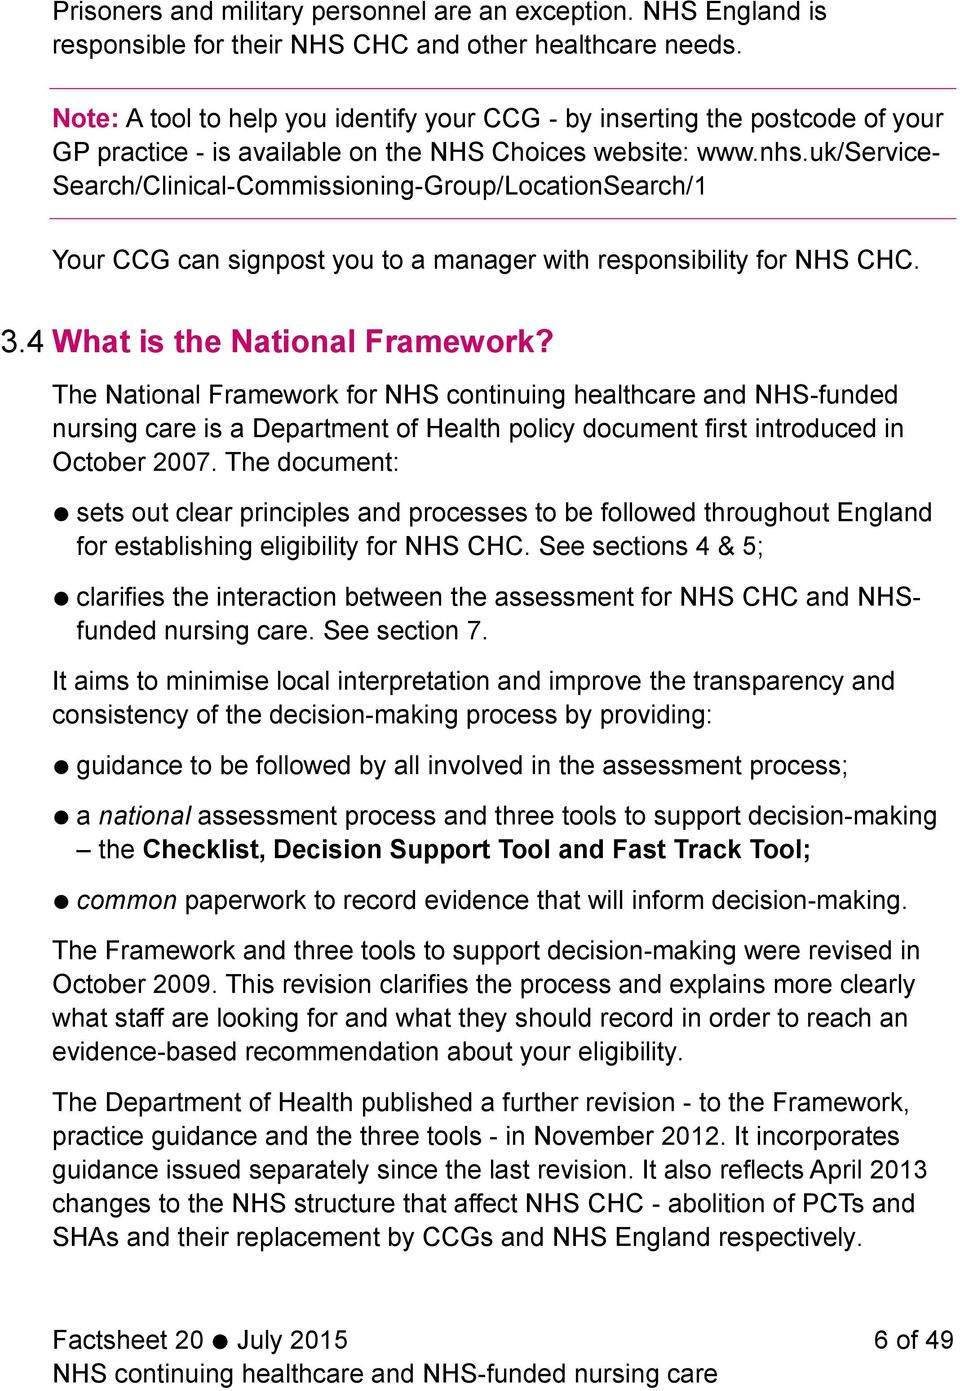 uk/service- Search/Clinical-Commissioning-Group/LocationSearch/1 Your CCG can signpost you to a manager with responsibility for NHS CHC. 3.4 What is the National Framework?